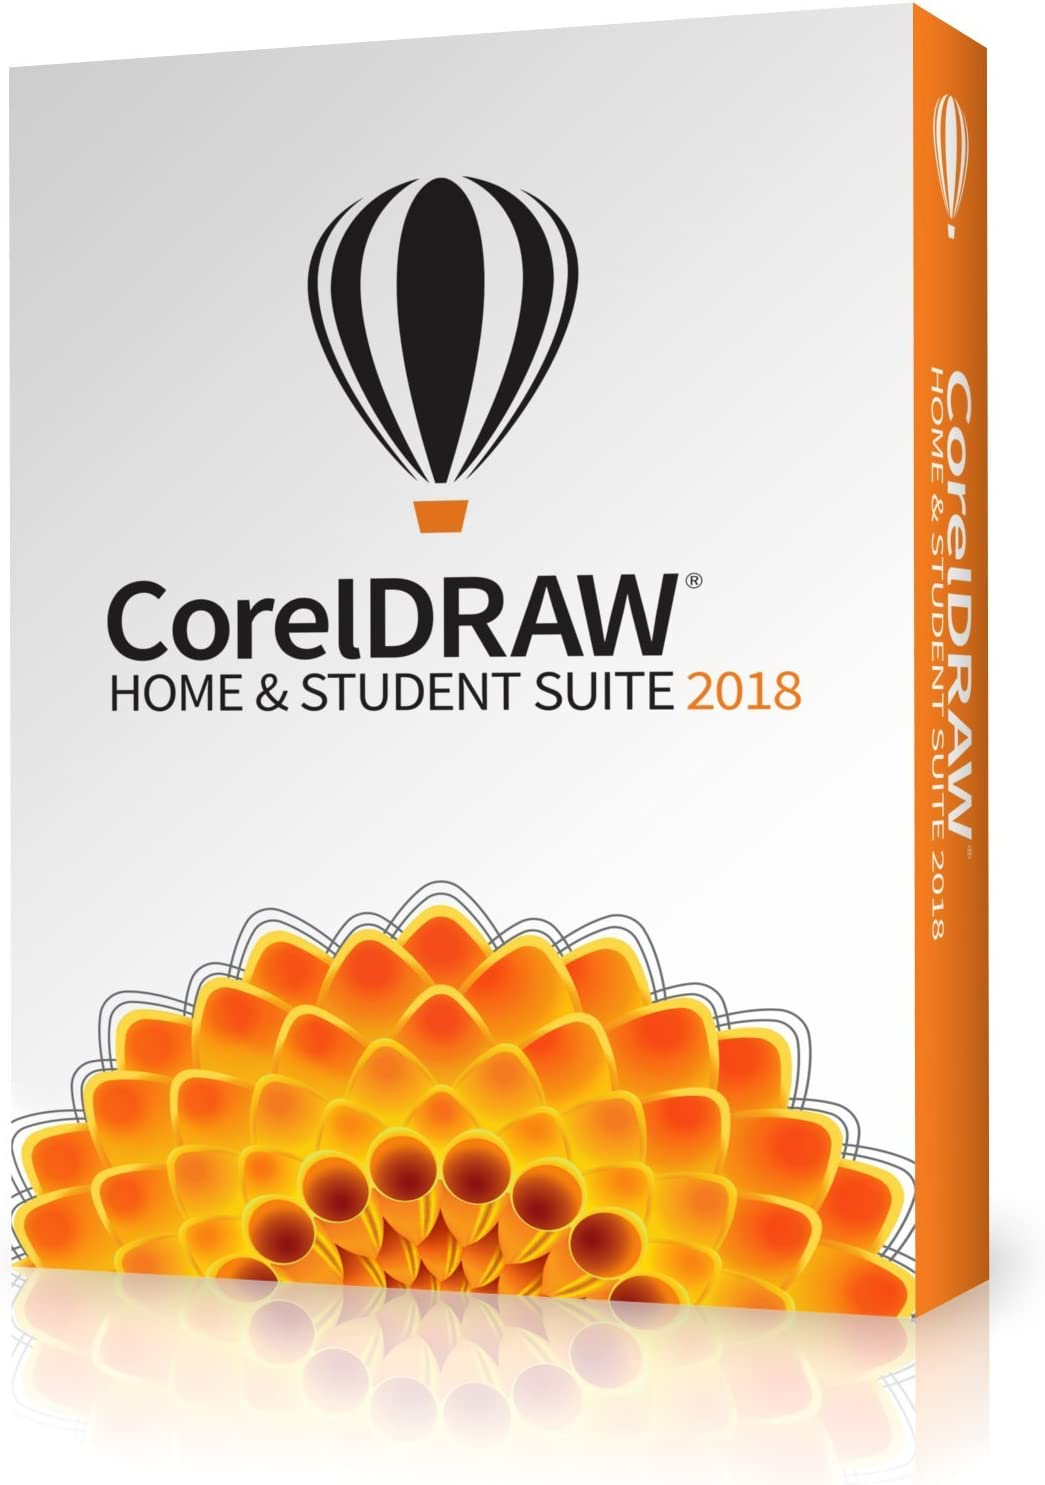 CorelDRAW Home and Student Suite 2018